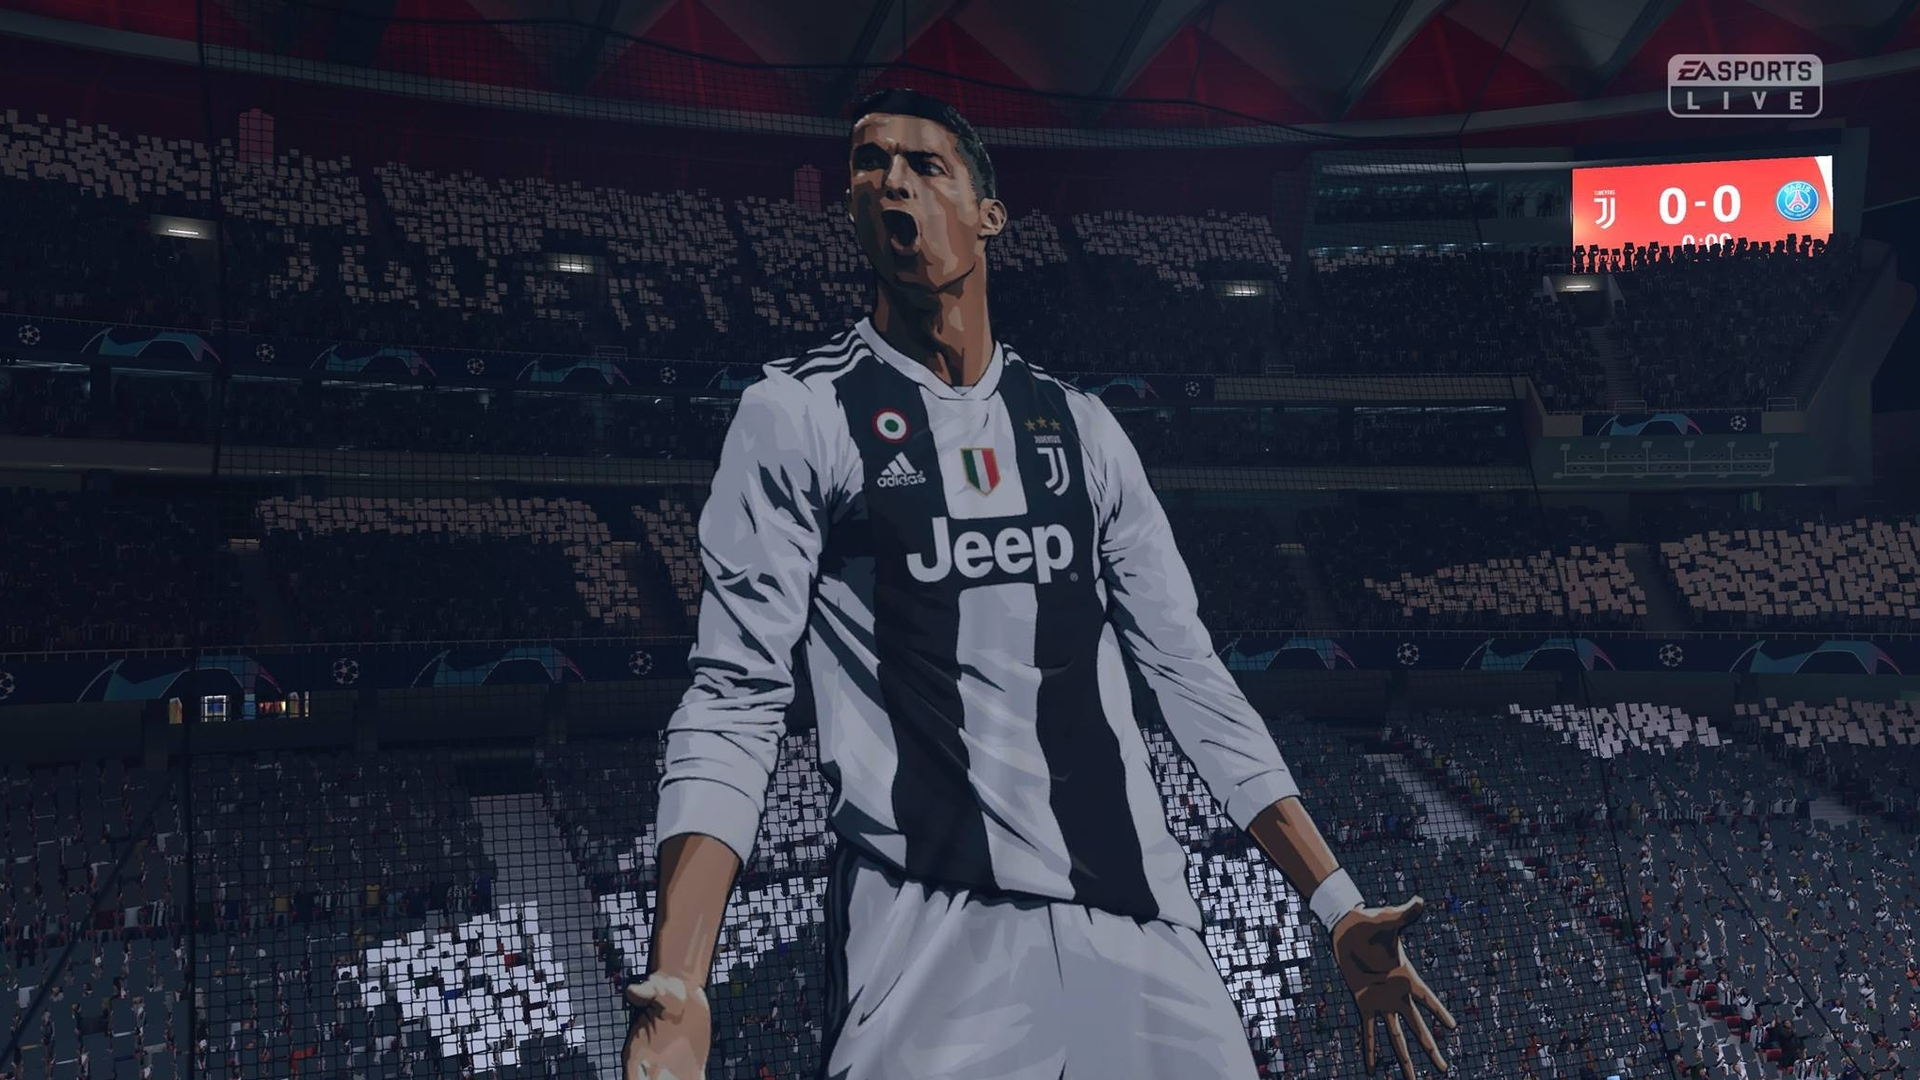 FIFA 19 review - the spectacular, troubling video game ...